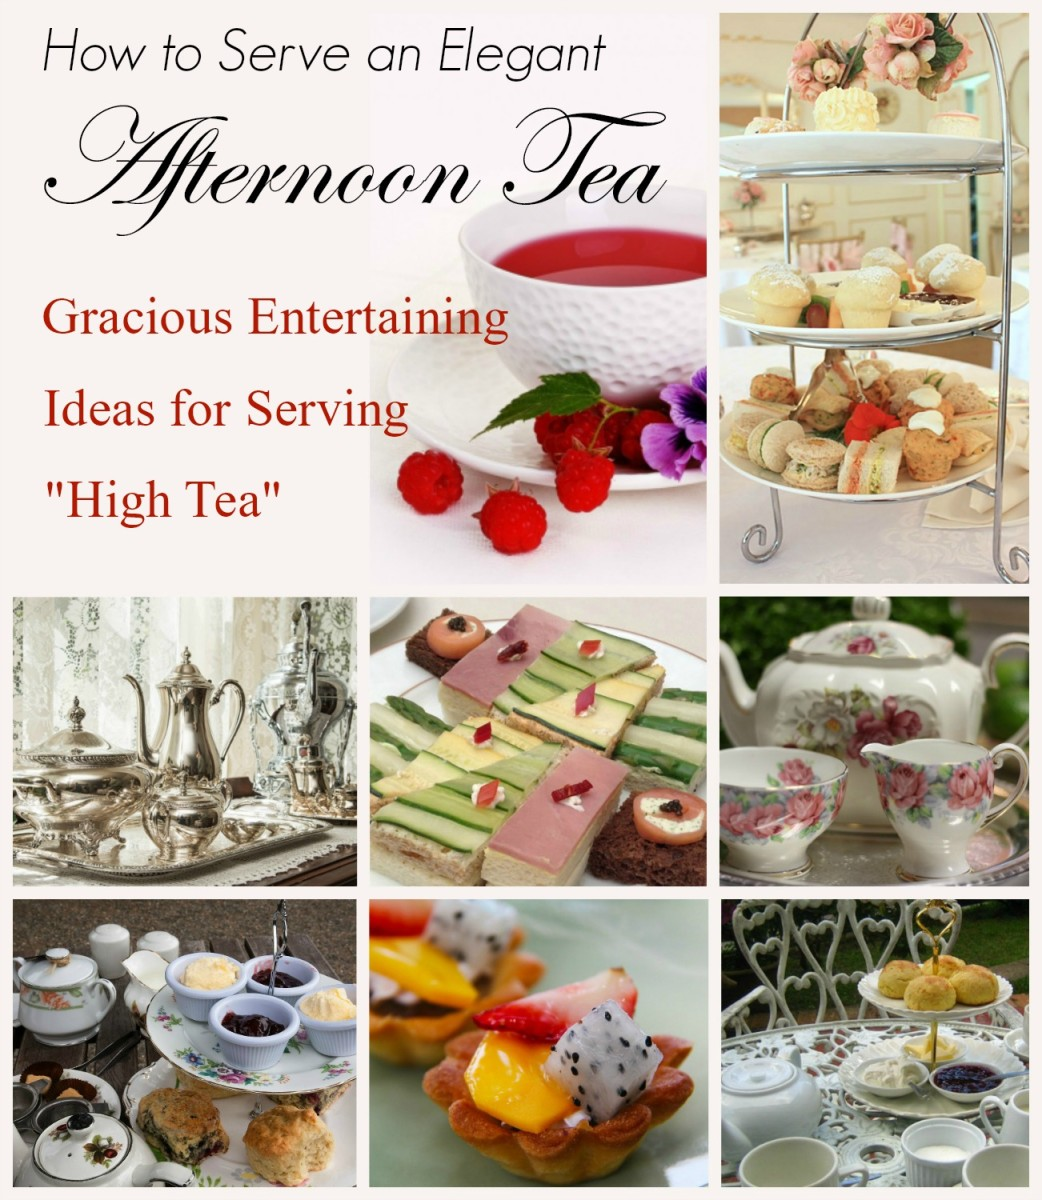 Learn how to host a gracious casual or formal afternoon tea service with these elegant entertaining ideas.